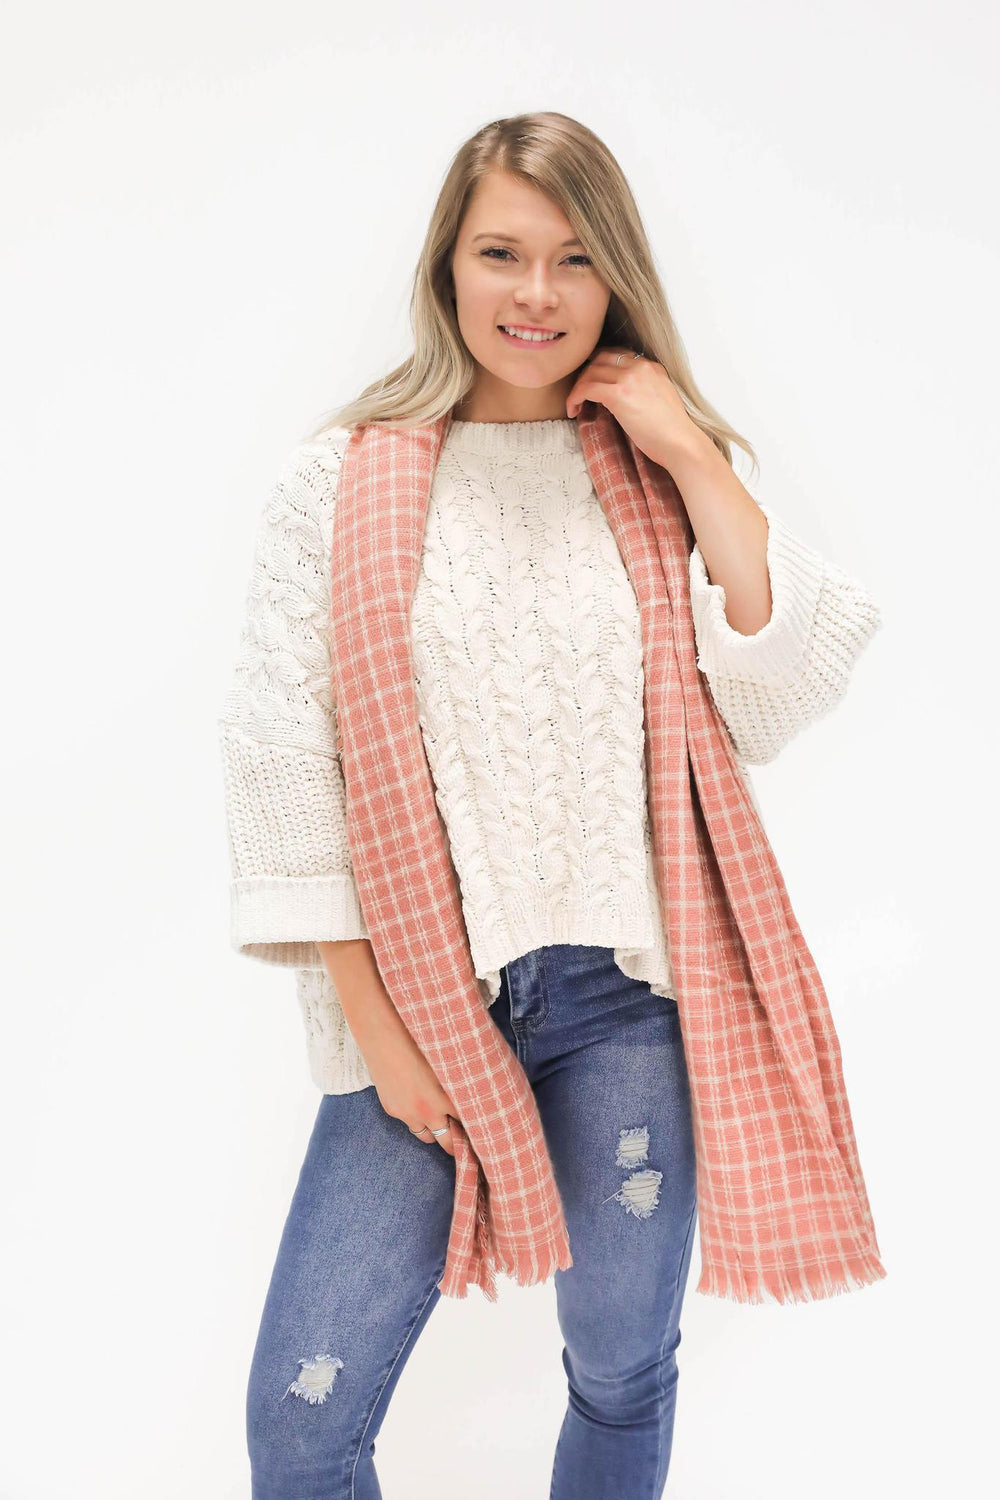 Cheesin' Checkered Pink Scarf